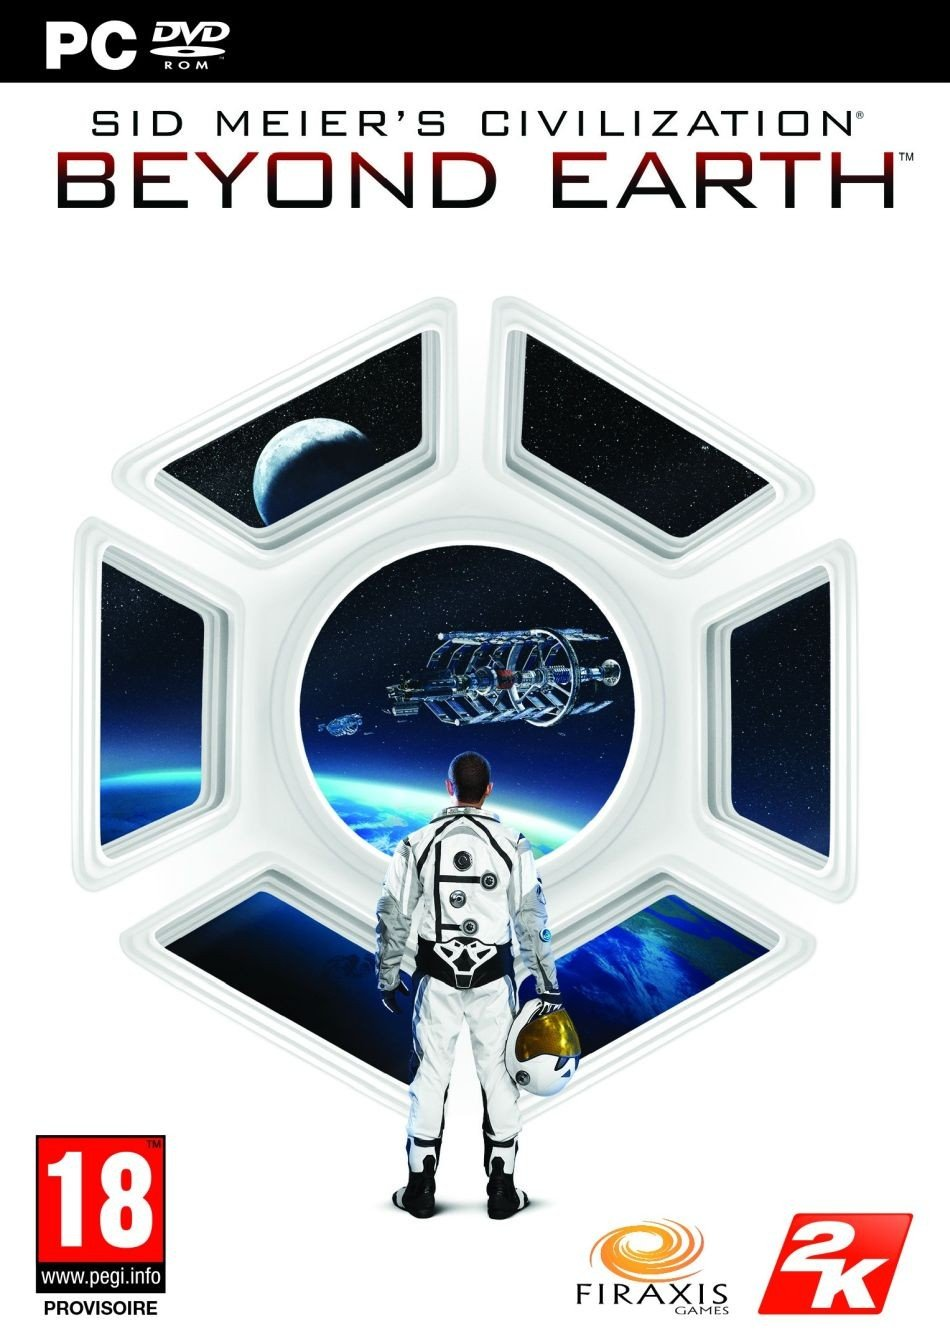 Sid Meier's Civilization: Beyond Earth 文明:太空